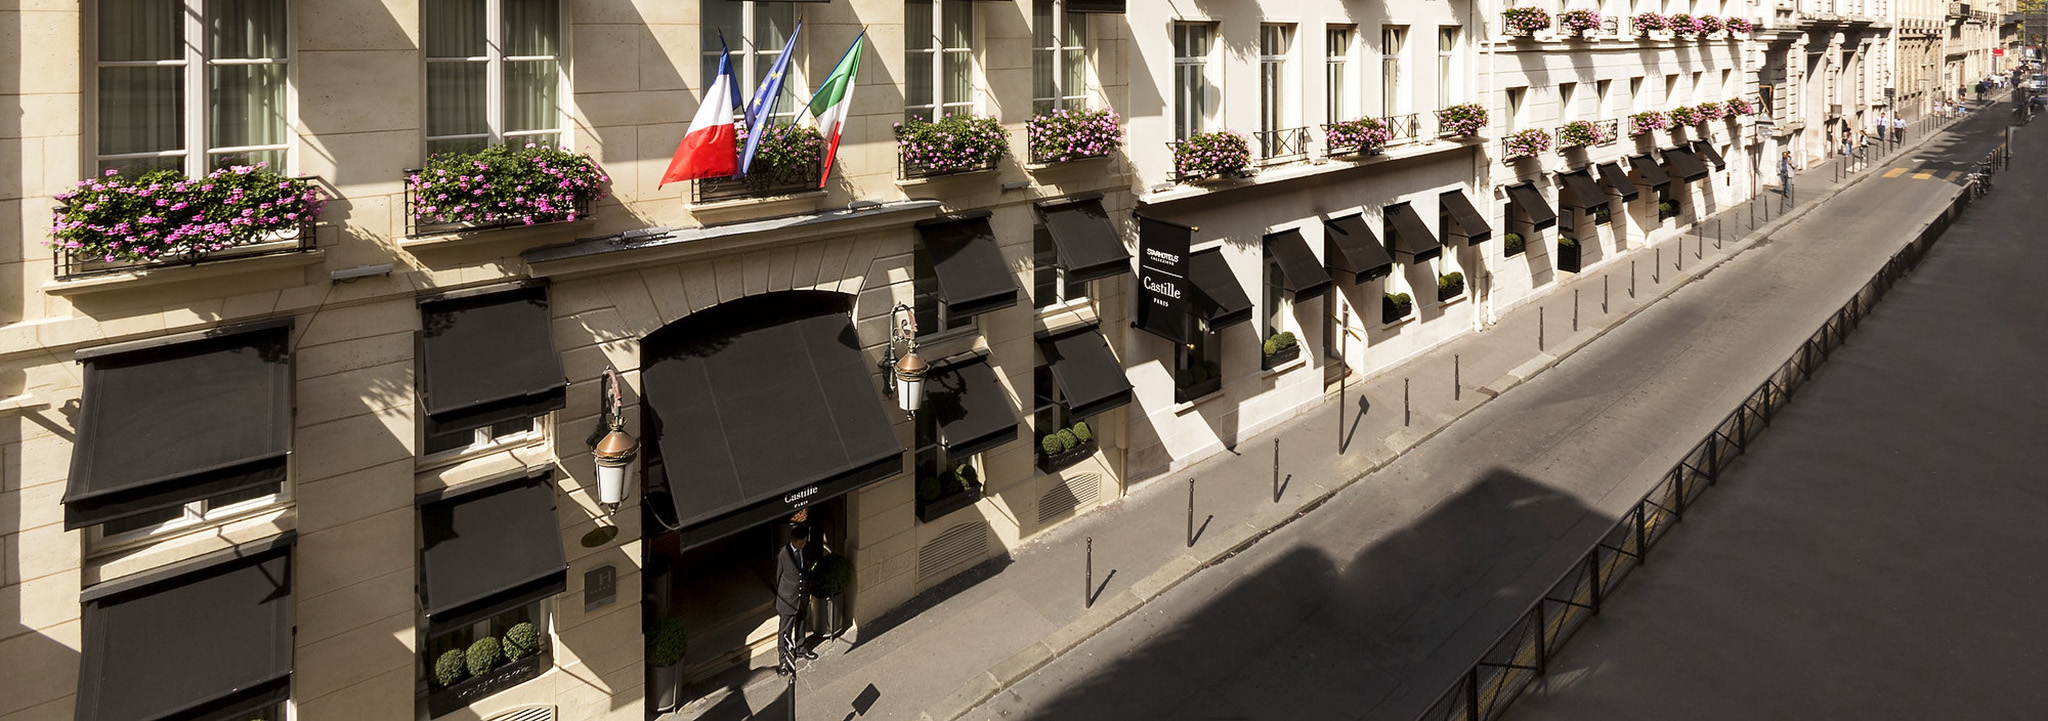 Castille Luxury hotel , Michelin starred - Paris / France